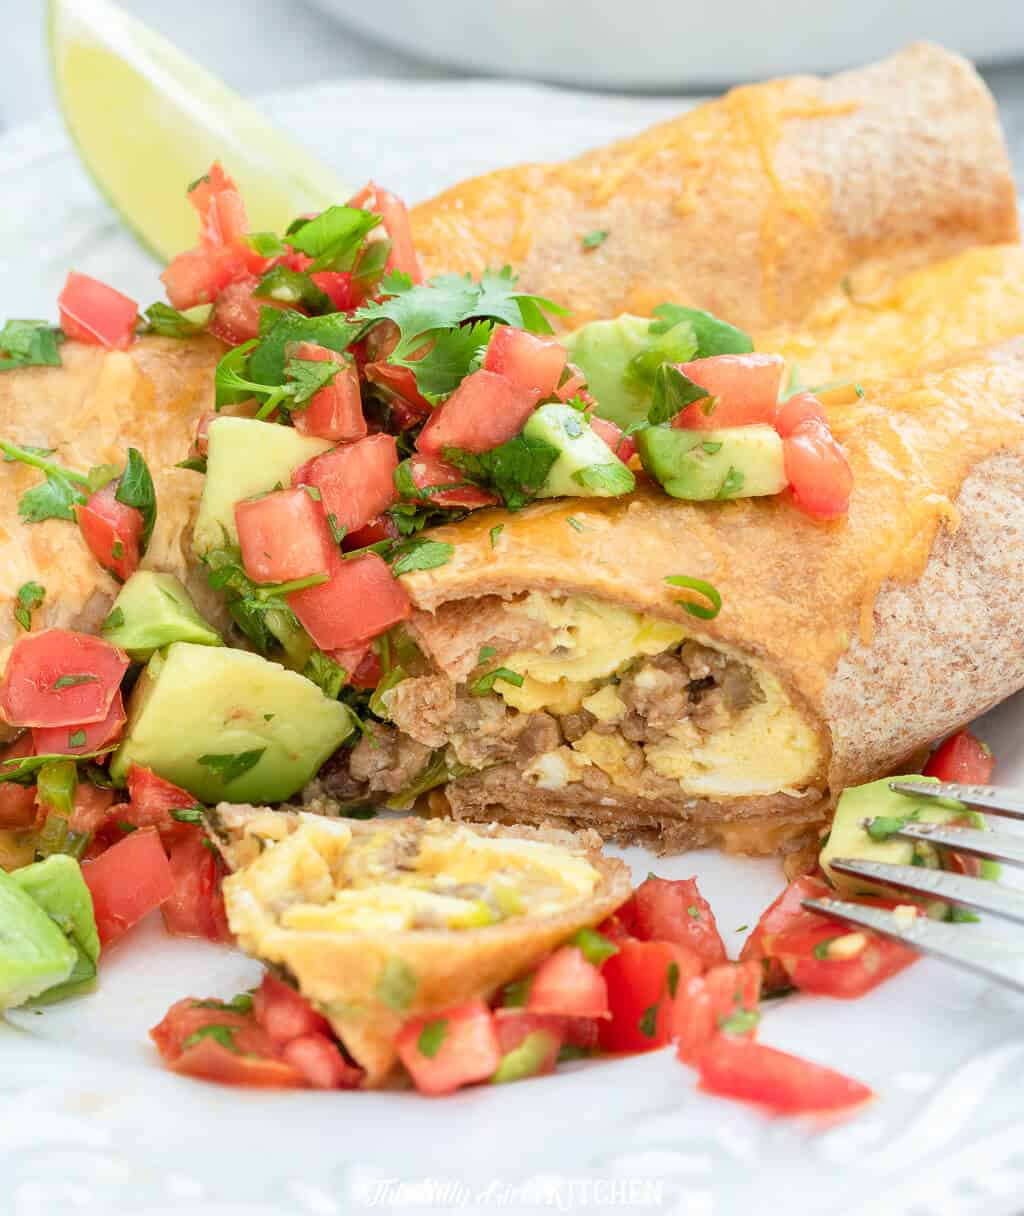 With Mexican flavors, ground beef, eggs, and a luscious cheese sauce these breakfast enchiladas are a crowd pleaser! #recipe from thissillygirlskitchen.com #breakfast #enchiladas #breakfastenchiladas #Mexican